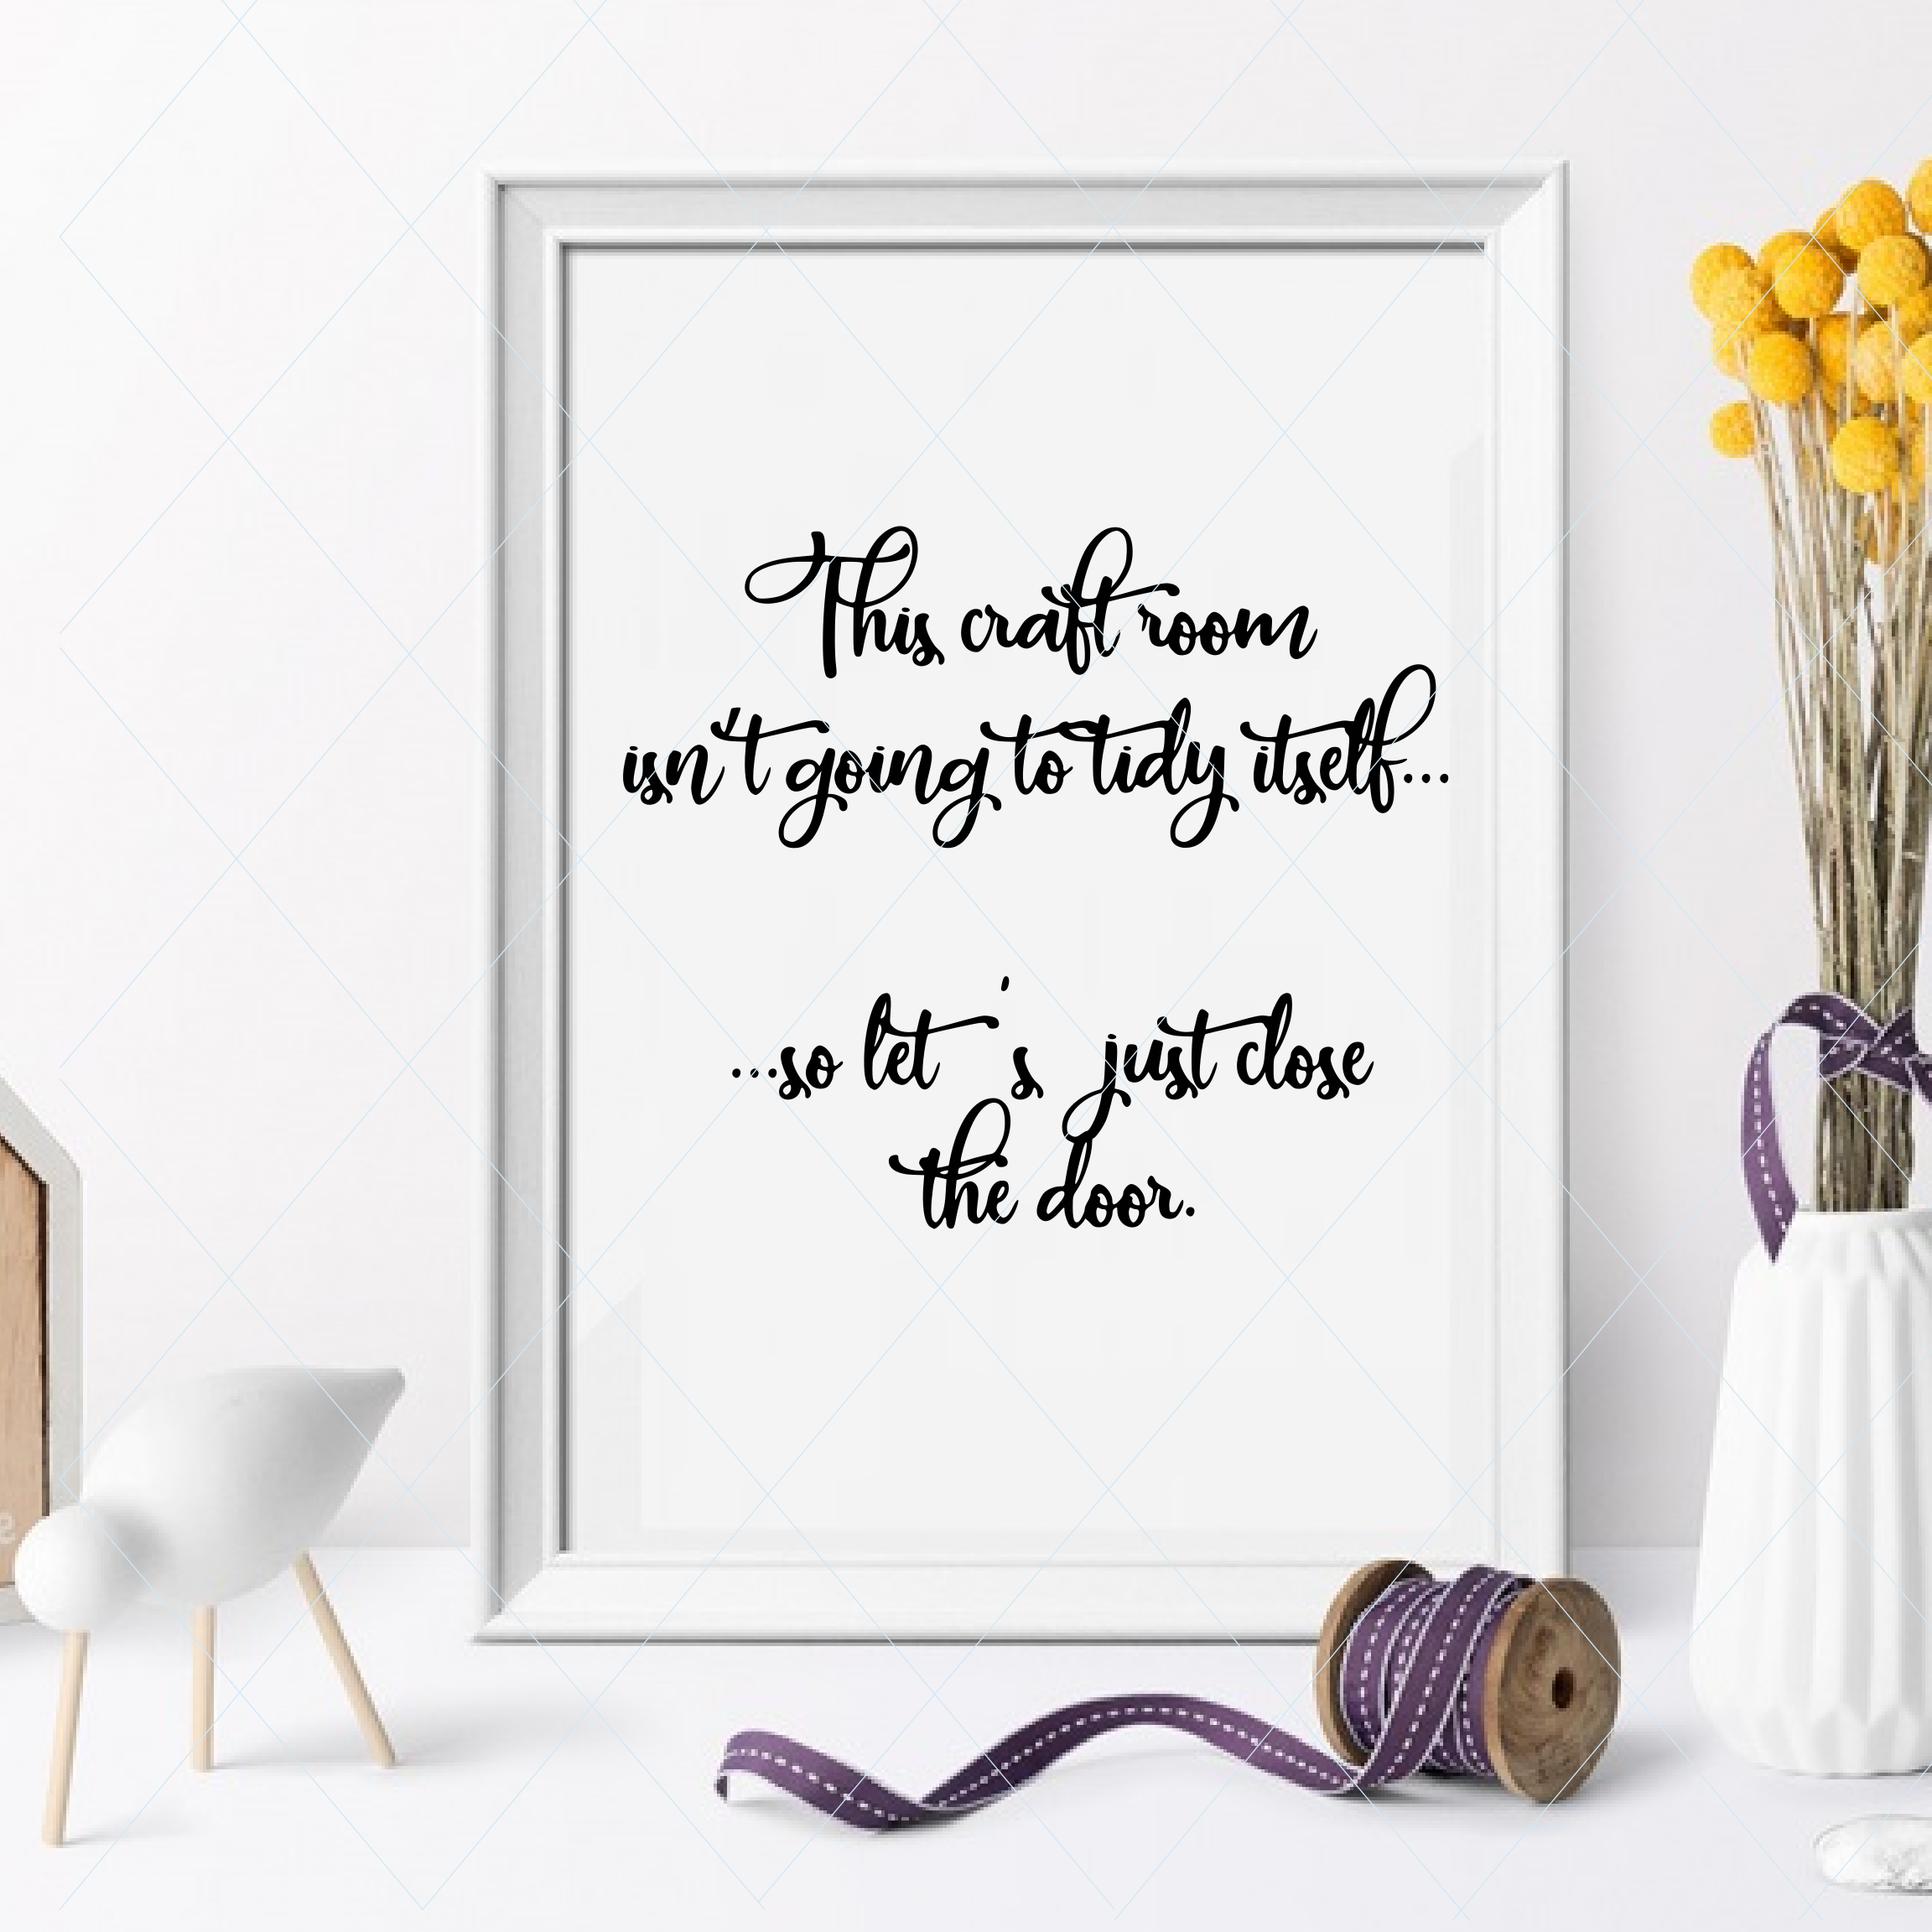 Crafting Svg Hobby Quote Text Sewing Room Craft Room Funny Home